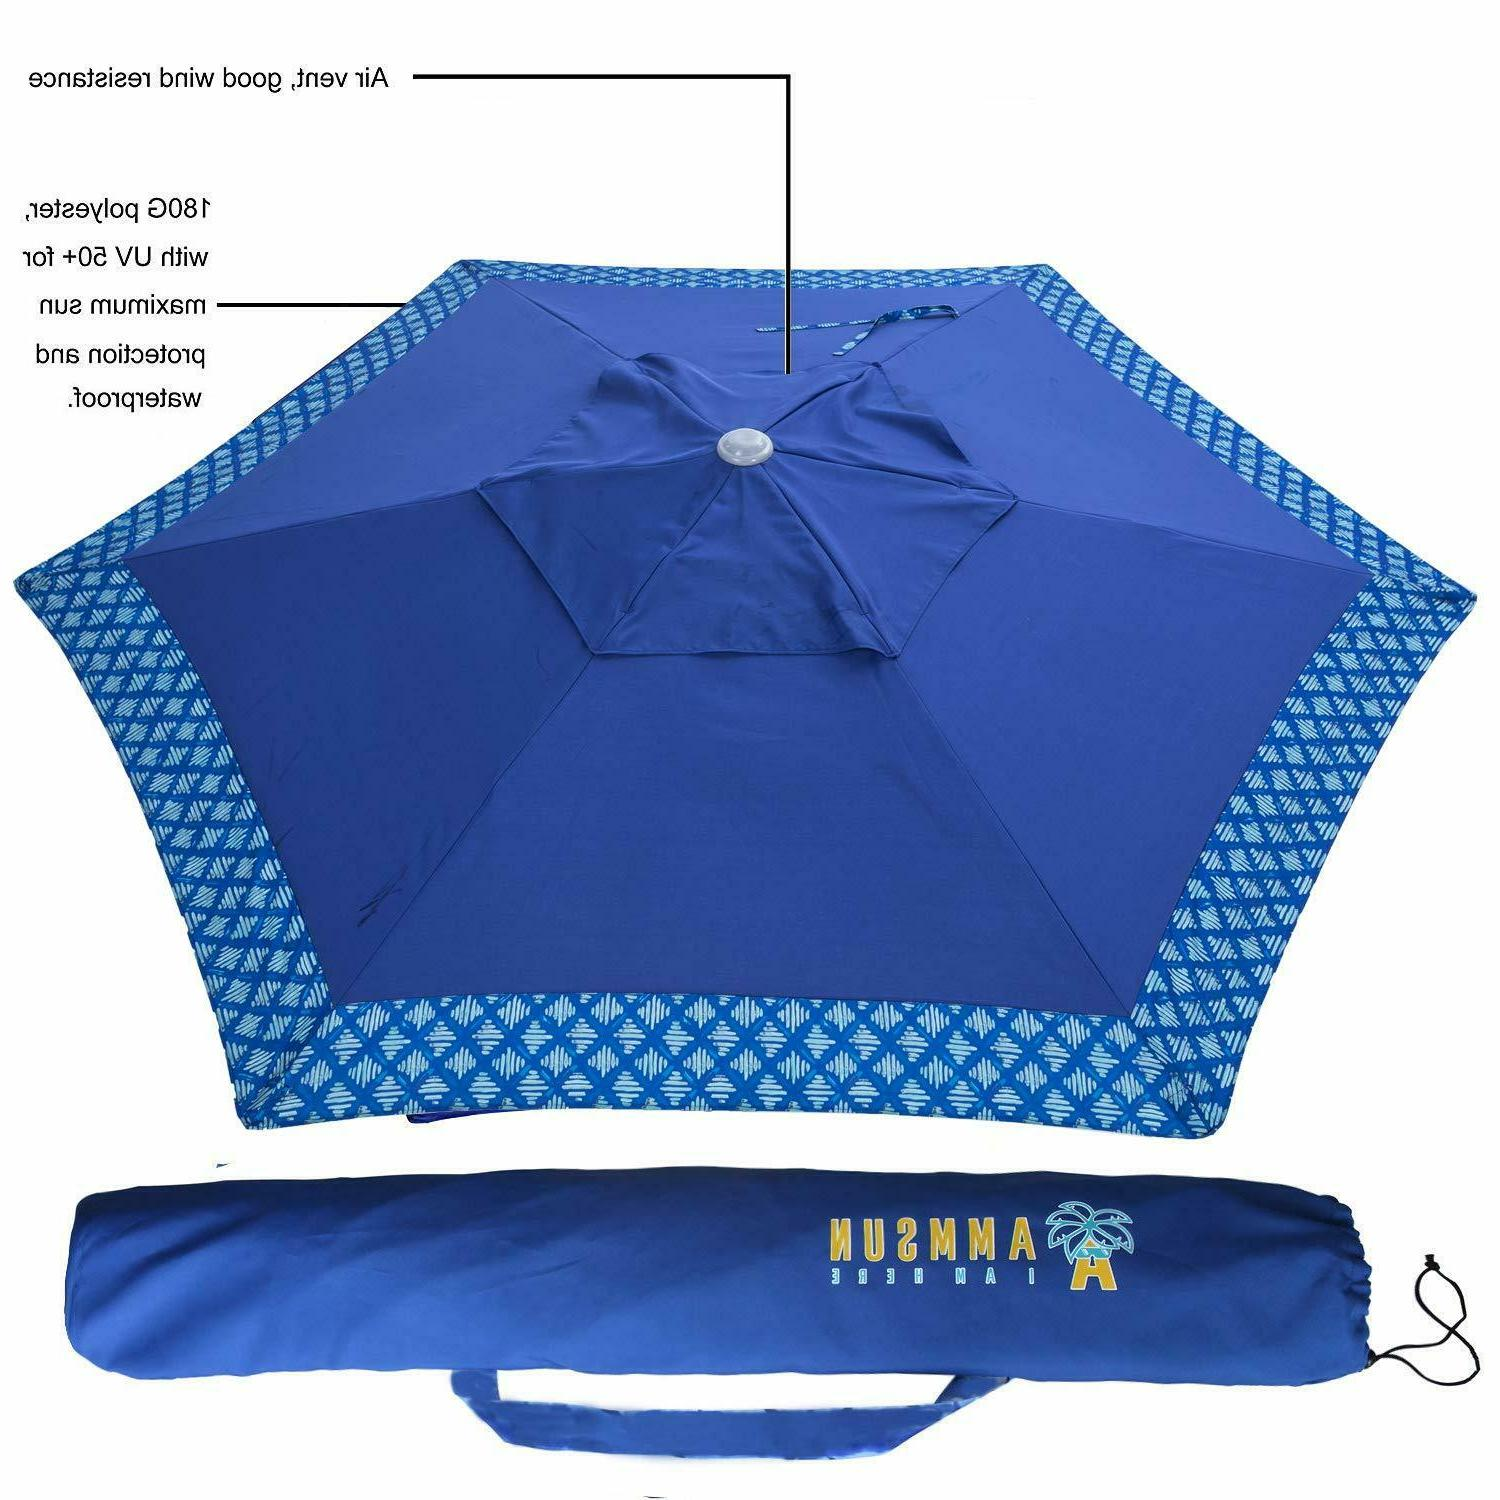 AMMSUN Beach Umbrella with Adjustable Height